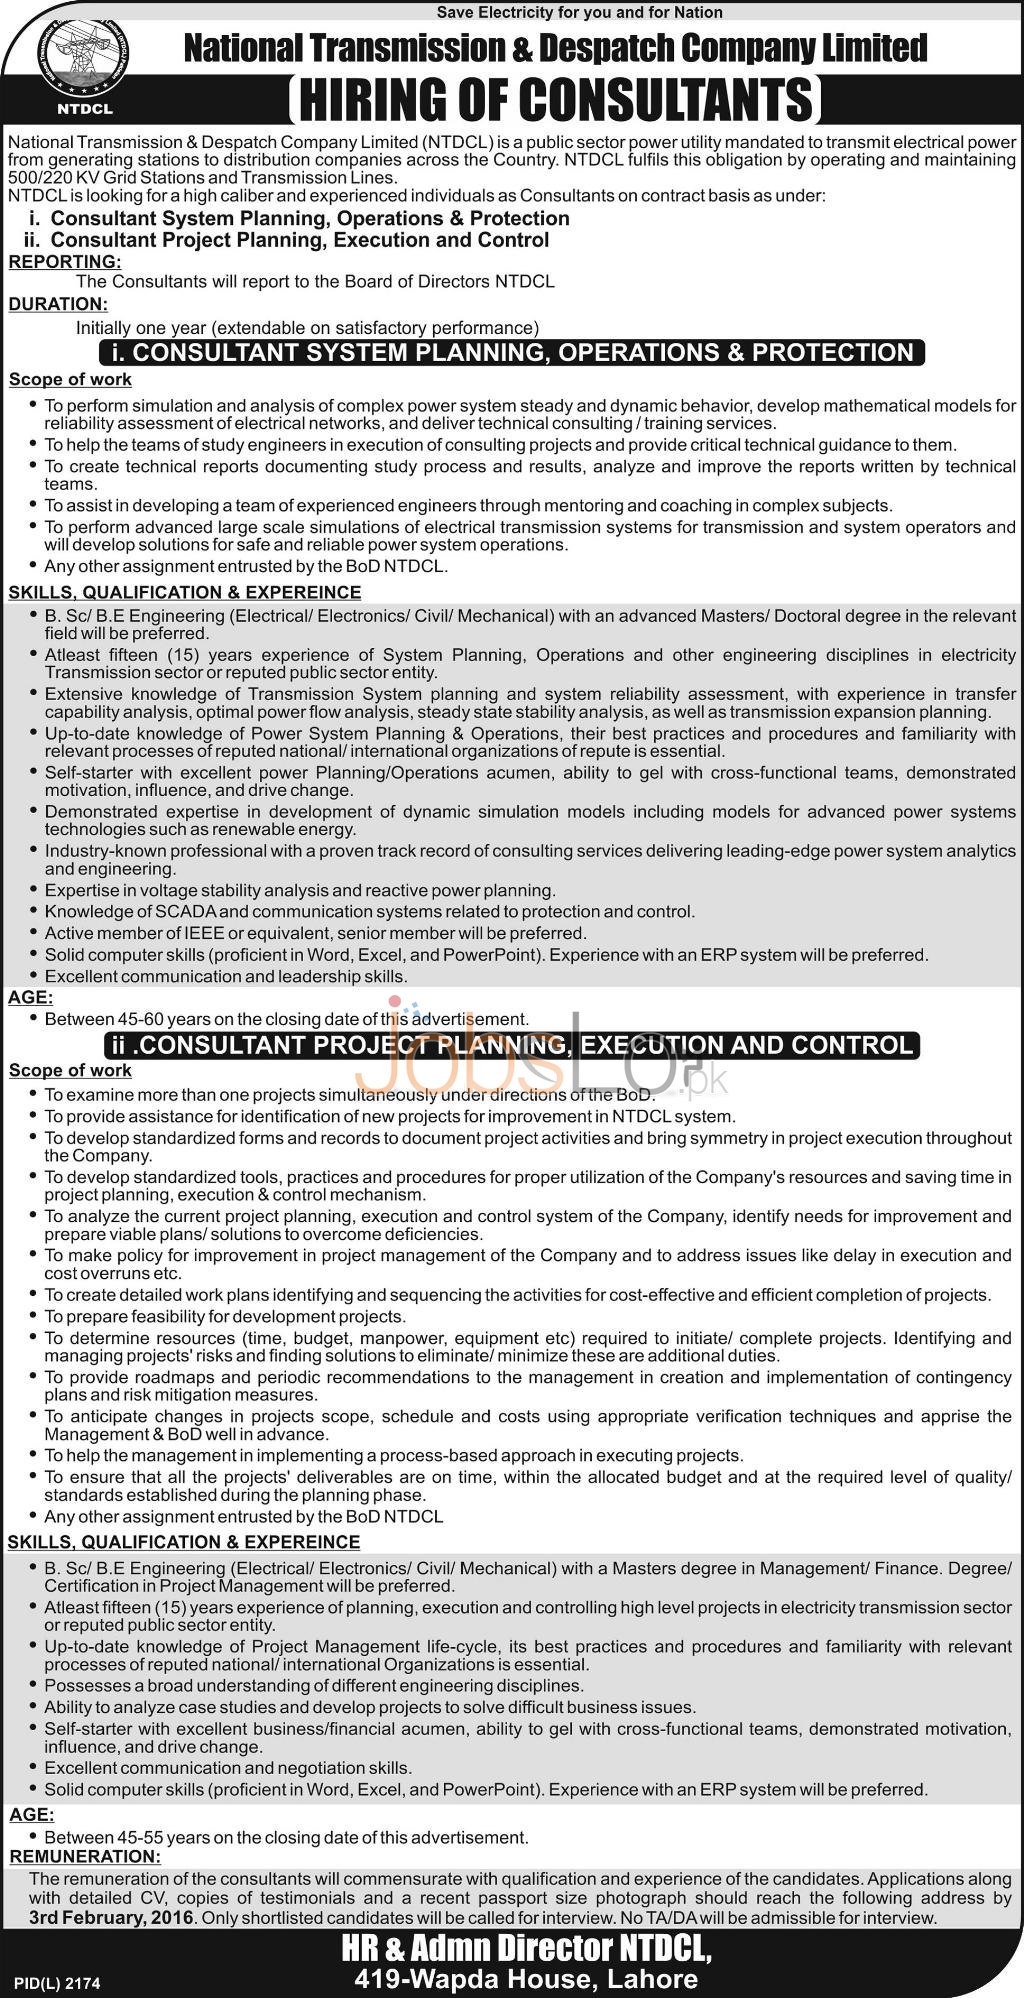 National Transmission &Dispatch Company Limited  in Lahore 2016 Jobs